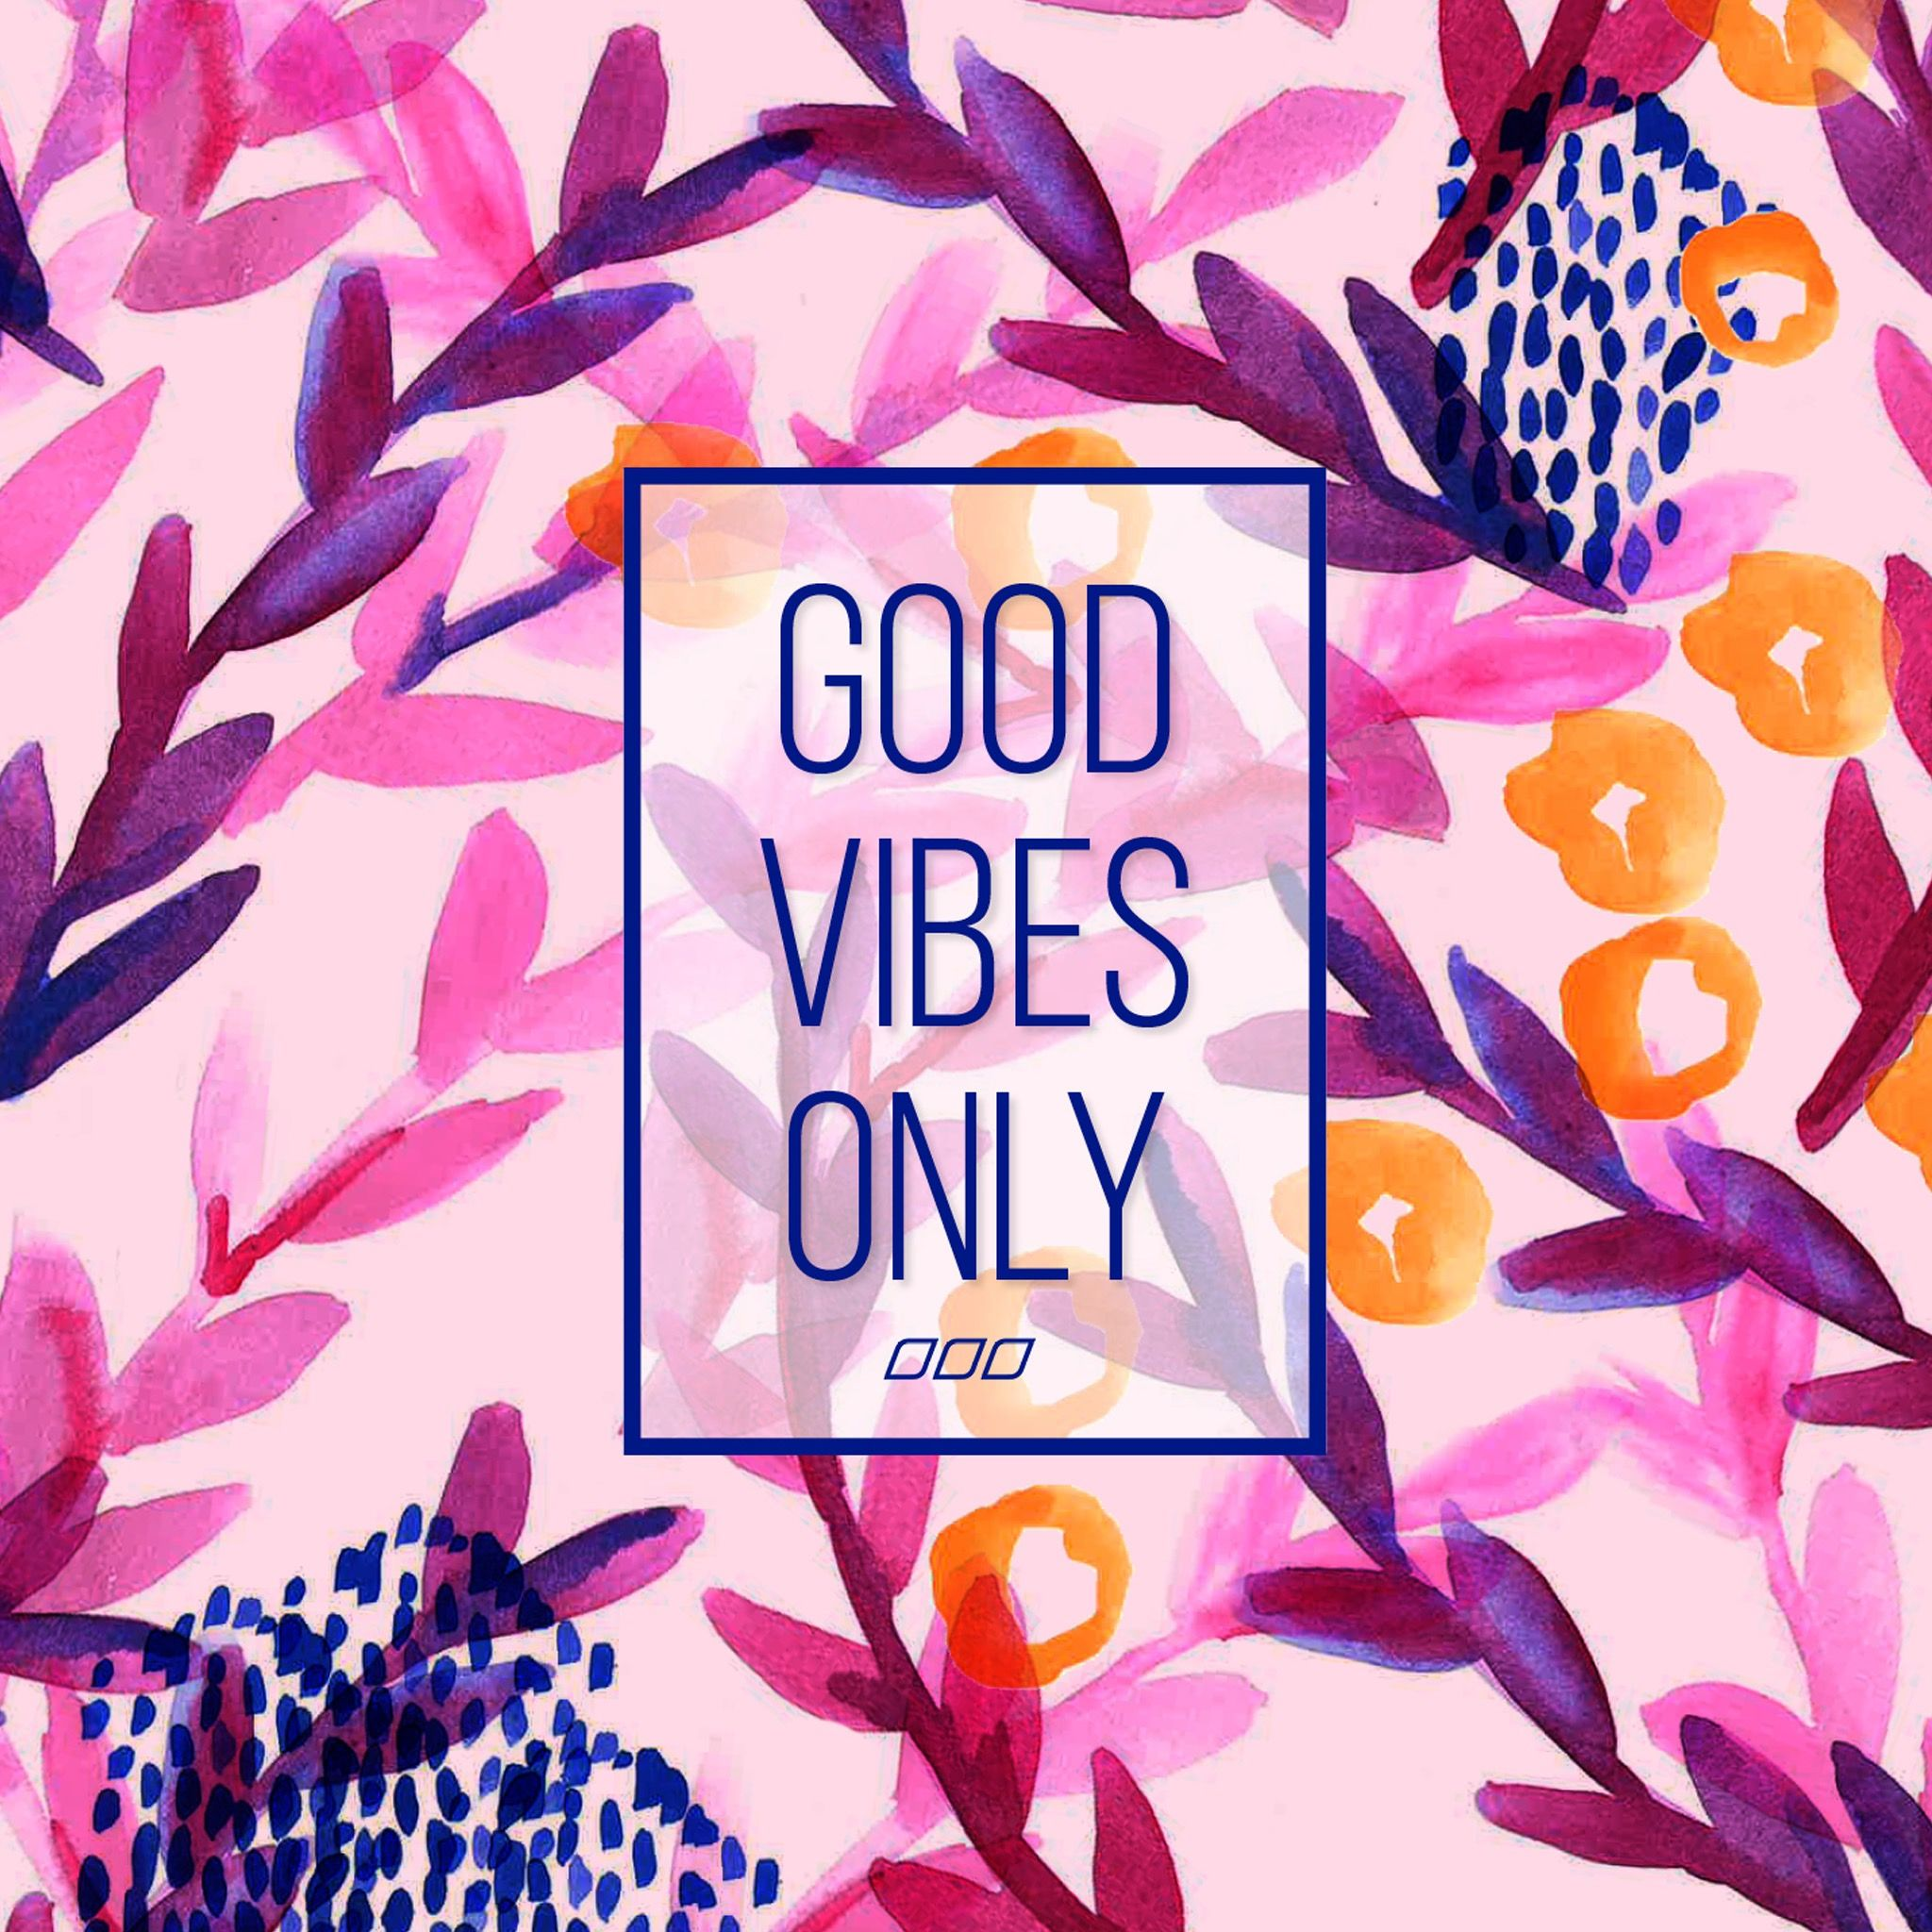 Wallpaper Good vibes only, Vibes